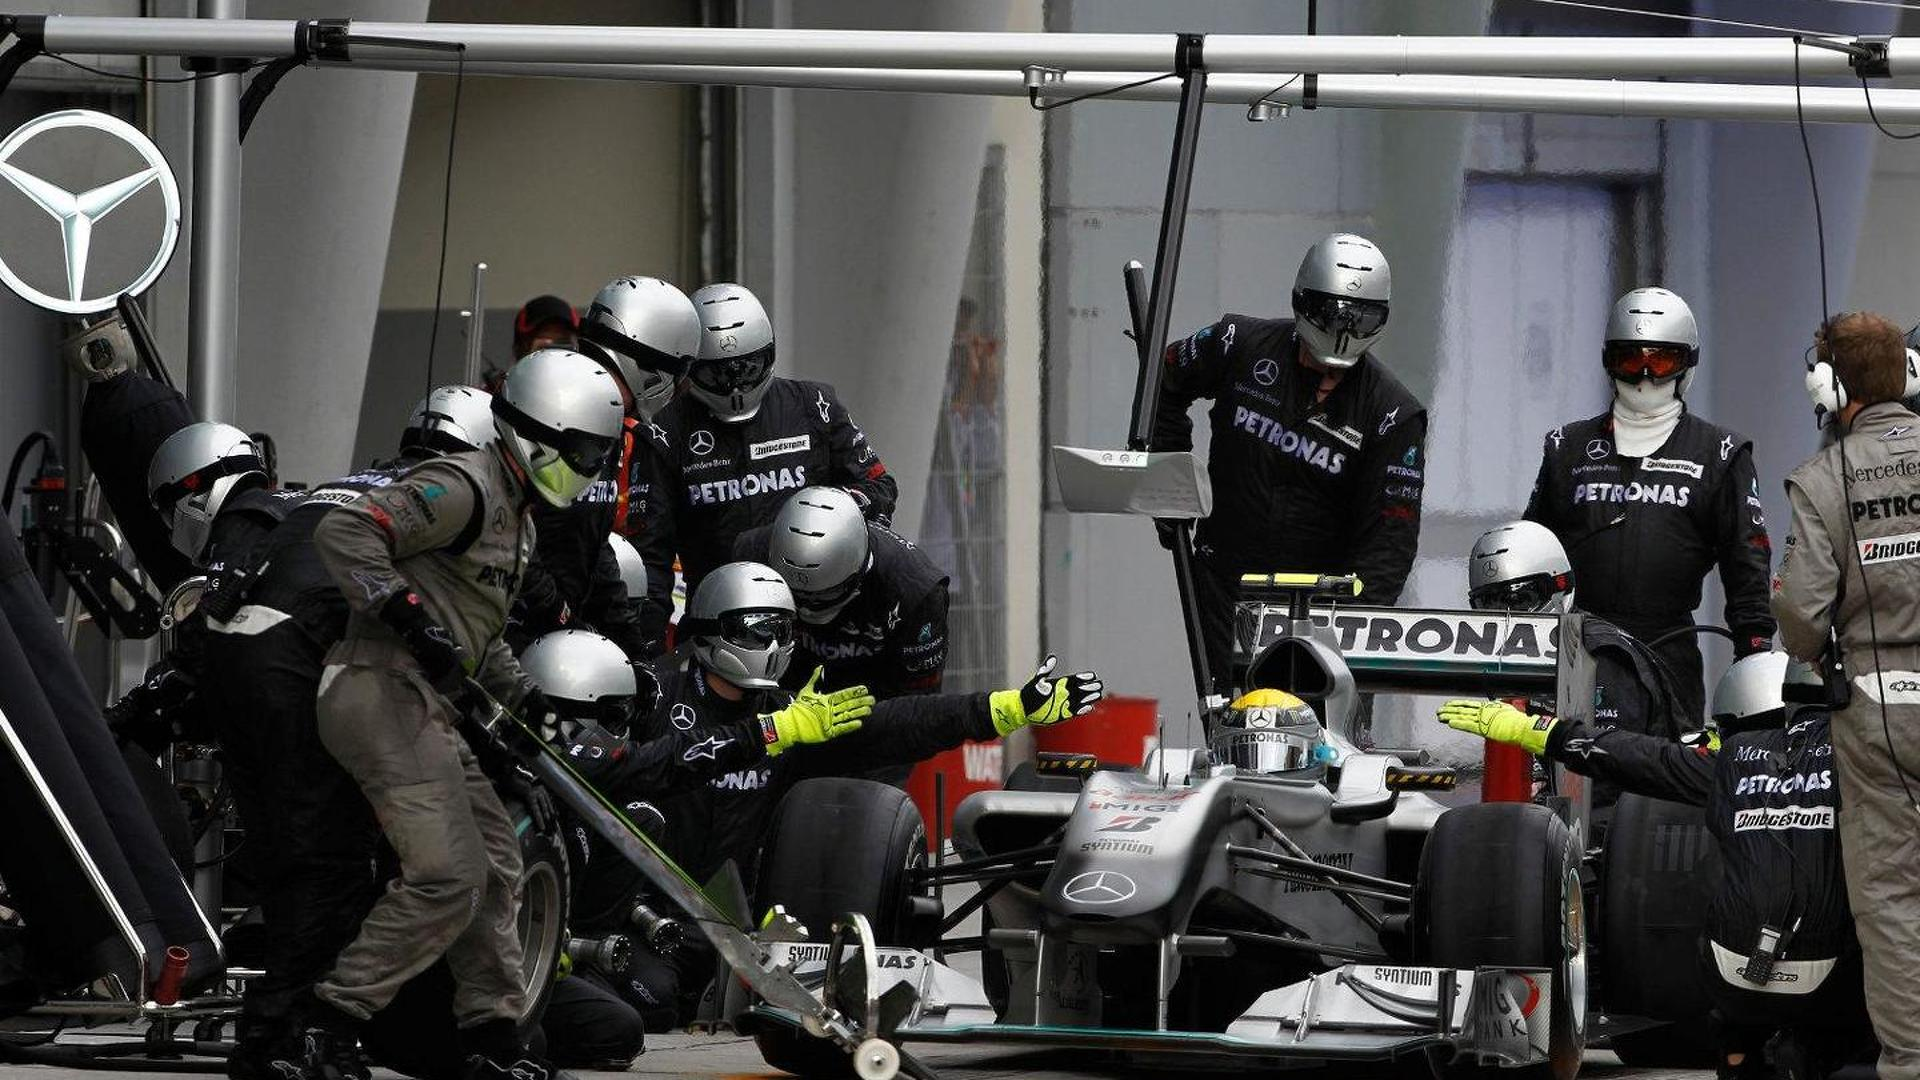 Mercedes crew winning 2010 pitstop speed race